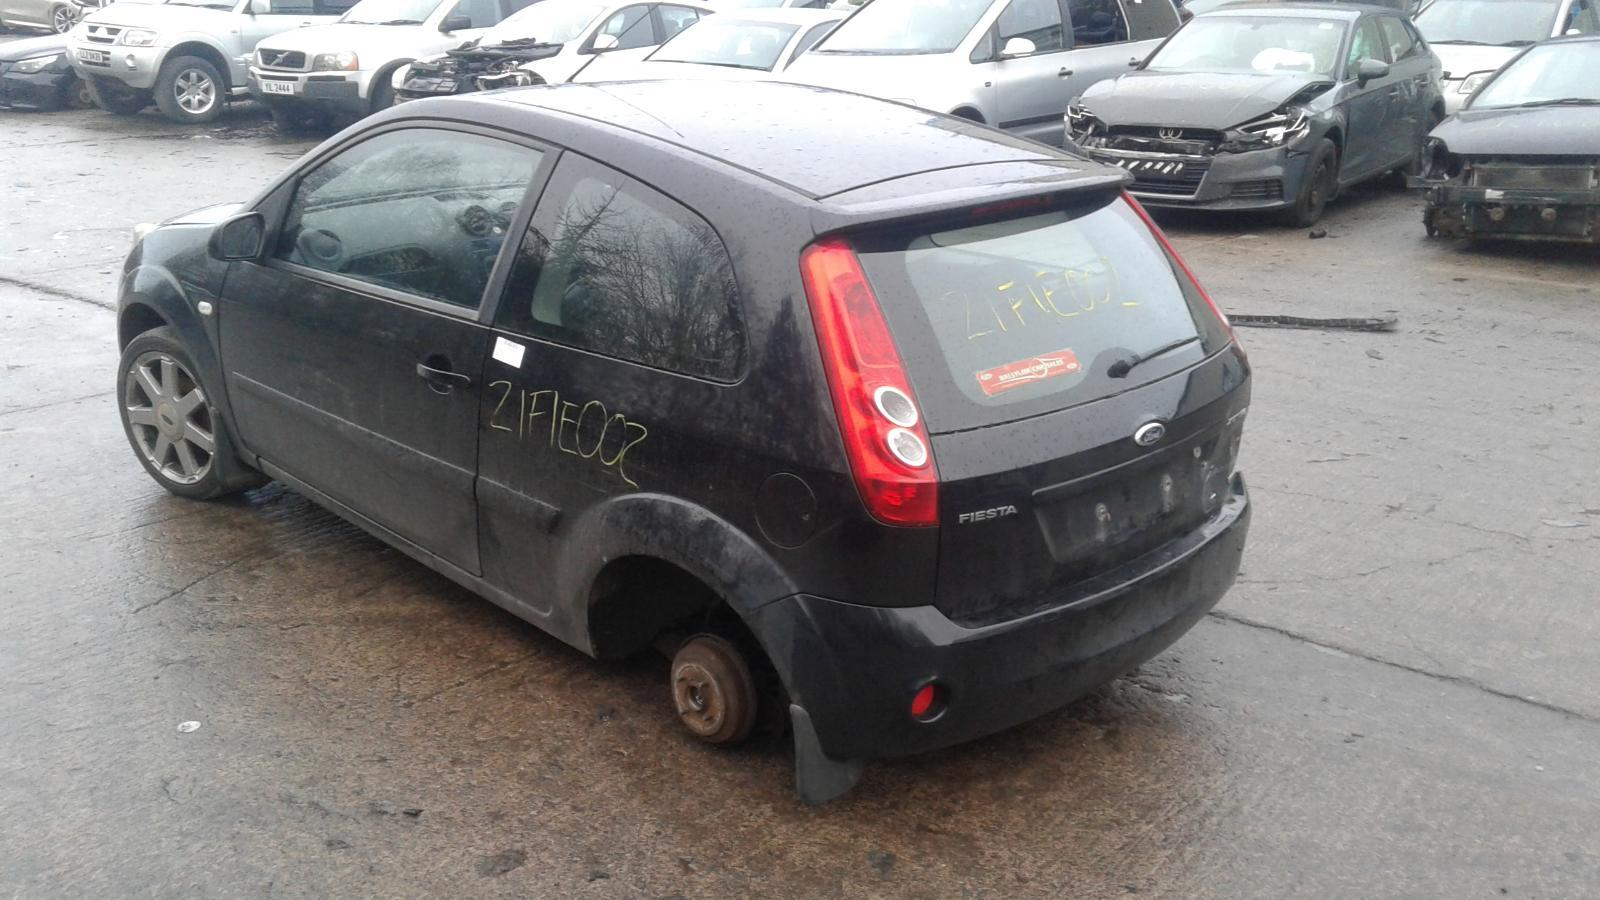 2008 FORD FIESTA Image